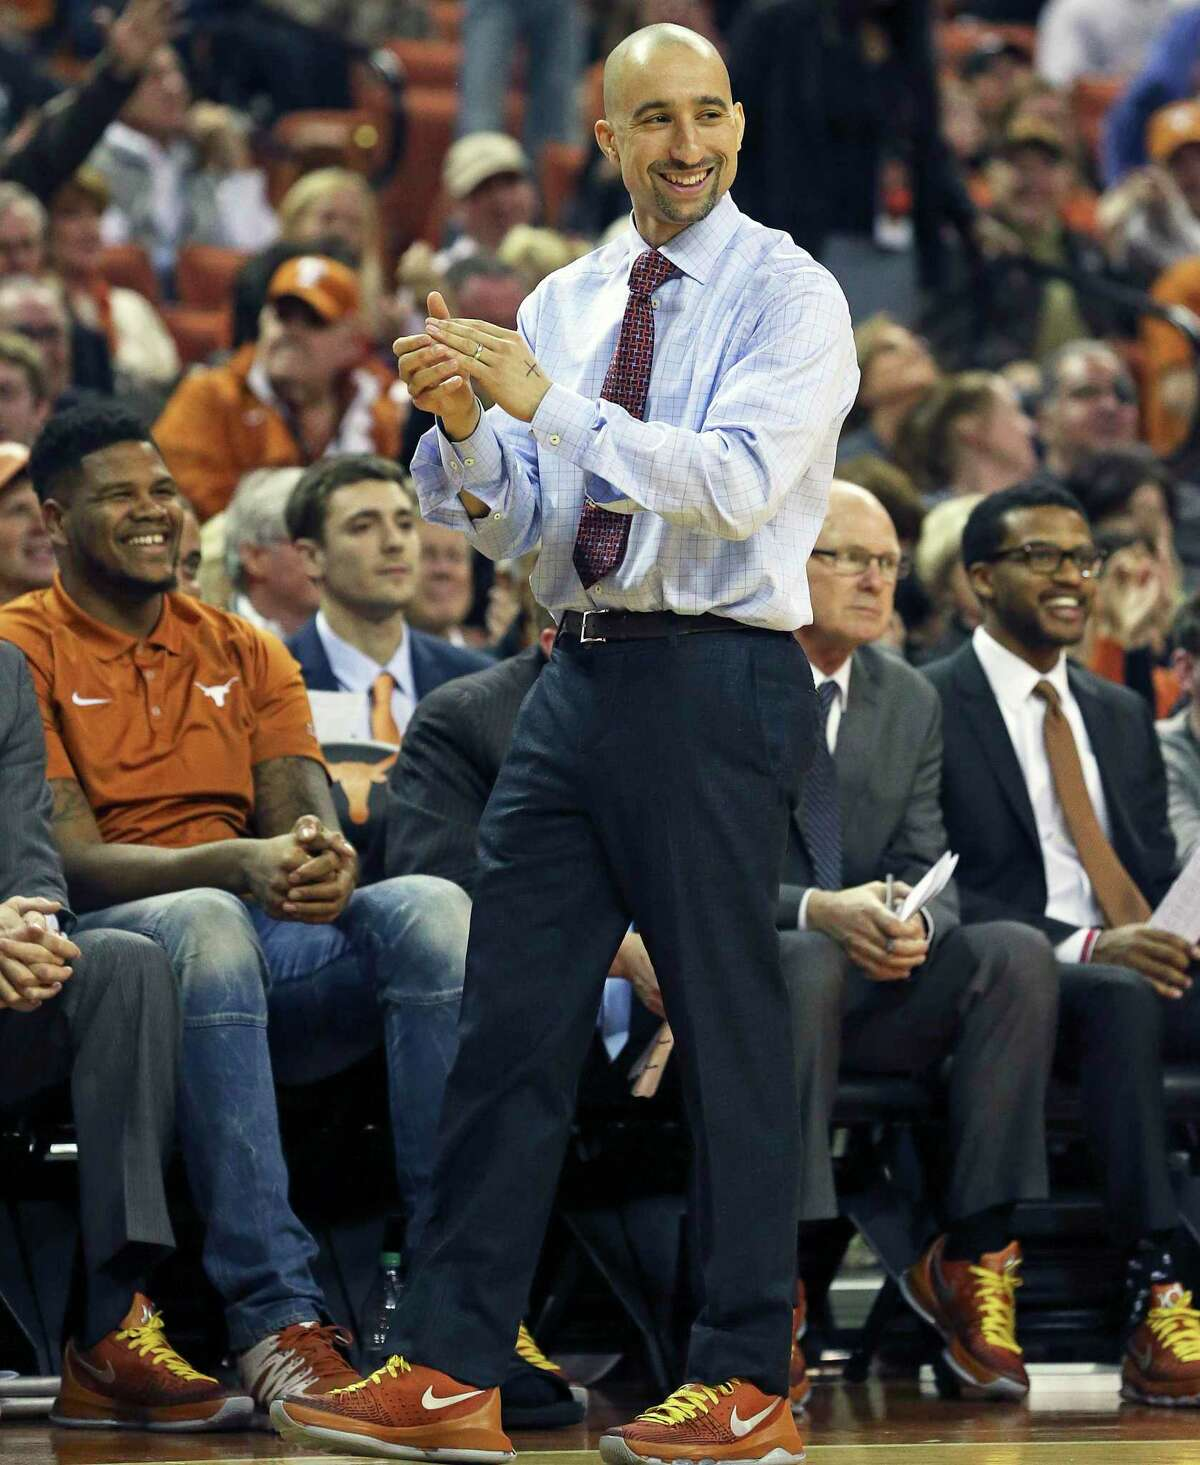 Texas coach Shaka Smart's now had four members verbally committed to his 2021 recruiting class.